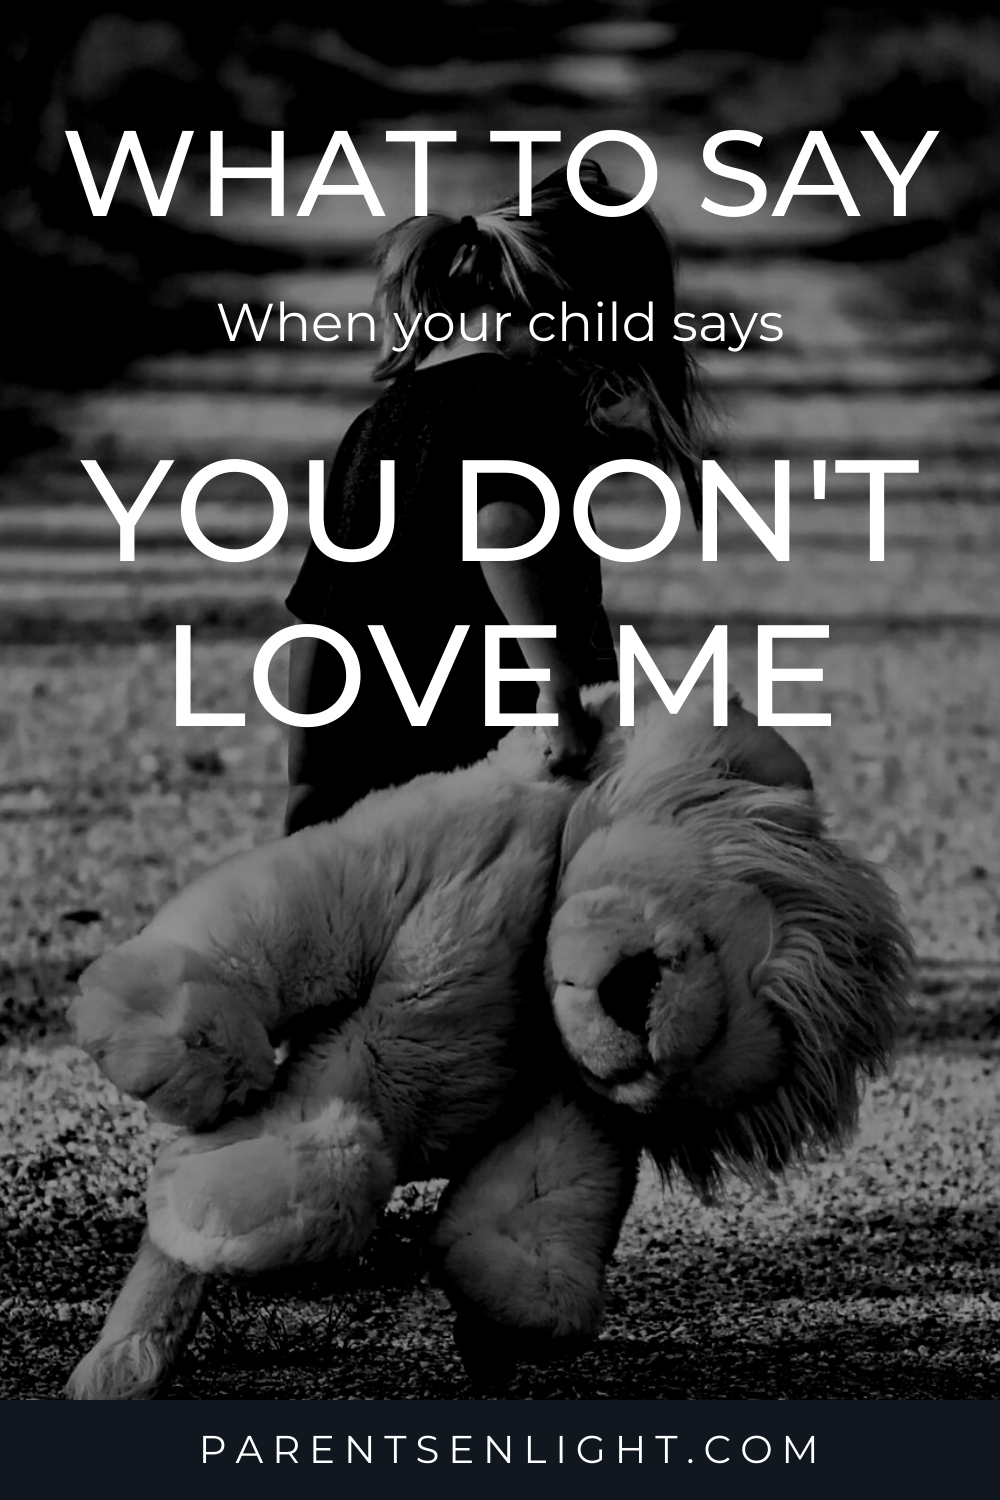 Loving our kids unconditionally, hearing them say that we don't love them hurts a lot. Our response though, makes the difference between connection and disconnection, and most parents don't know what to say when their children say they don't feel loved by them. Read on to learn what you should be saying #unconditionalparenting #unconditionallove #nvc #attachmentparenting #children'sfeelings #bigfeelings #tantrum #handlingfeelings #parenting #parentinghelp #parenting101 #motherhood #positivepsychology #raisinghappykids